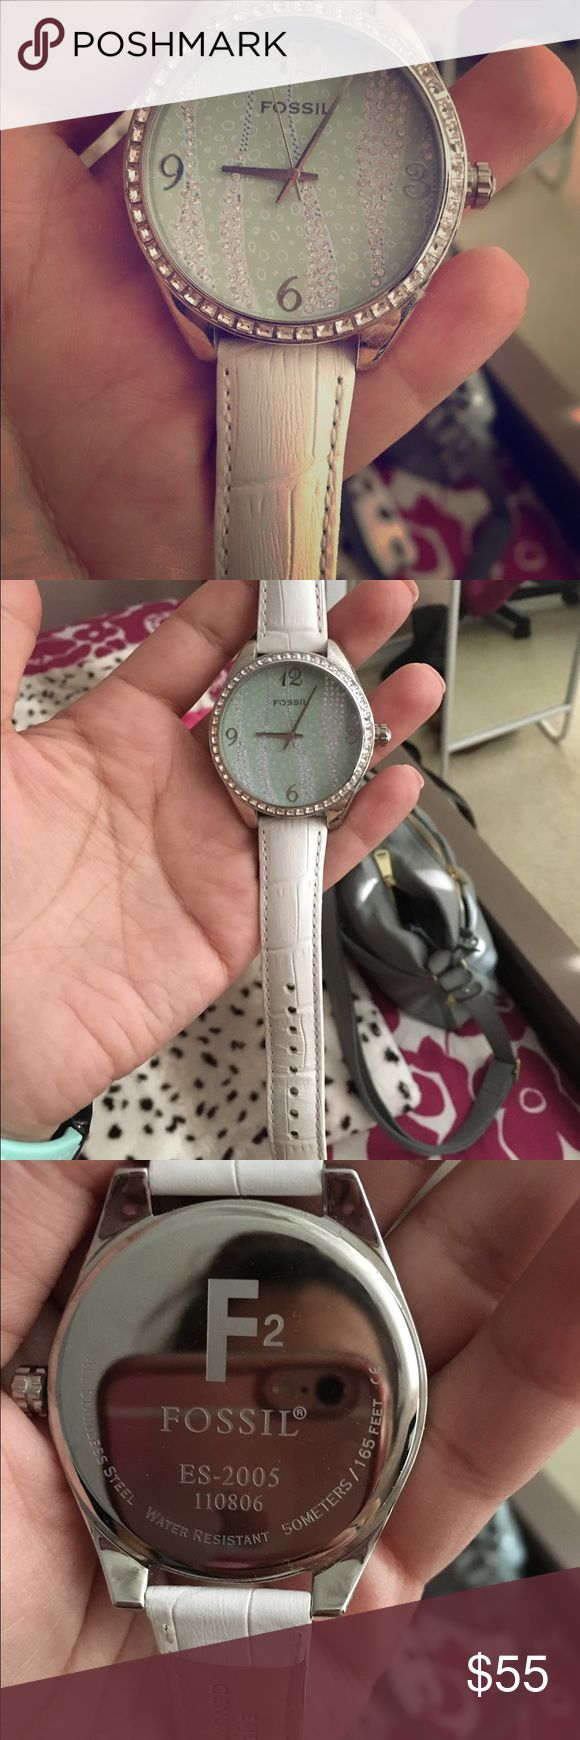 Fossil watch Never worn, genuine Fossil watch. It doesn't have any damage or scratches just needs a battery replacement. Beautiful watch that can be dressed up or down. Fossil Accessories Watches